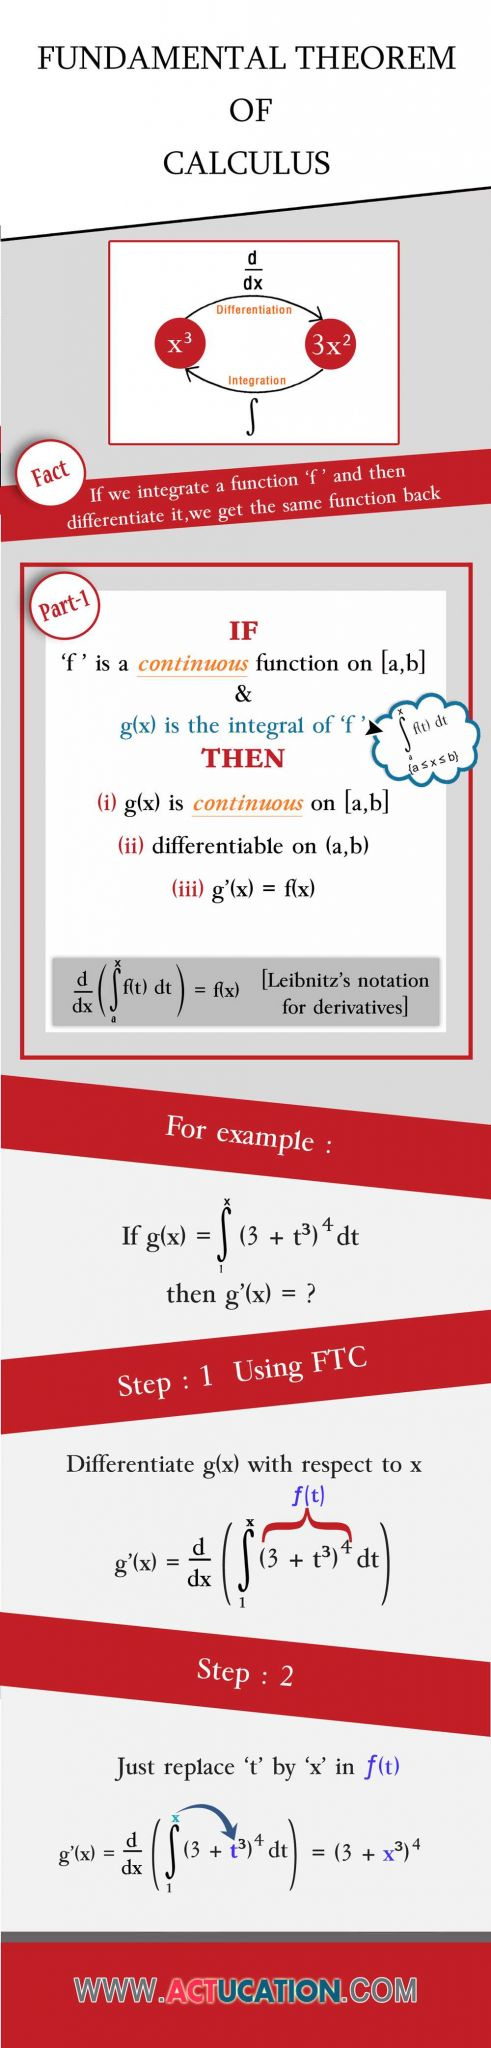 Computing formula Mass Worksheet together with Fundamental theorem Of Calculus Infographic Pinterest